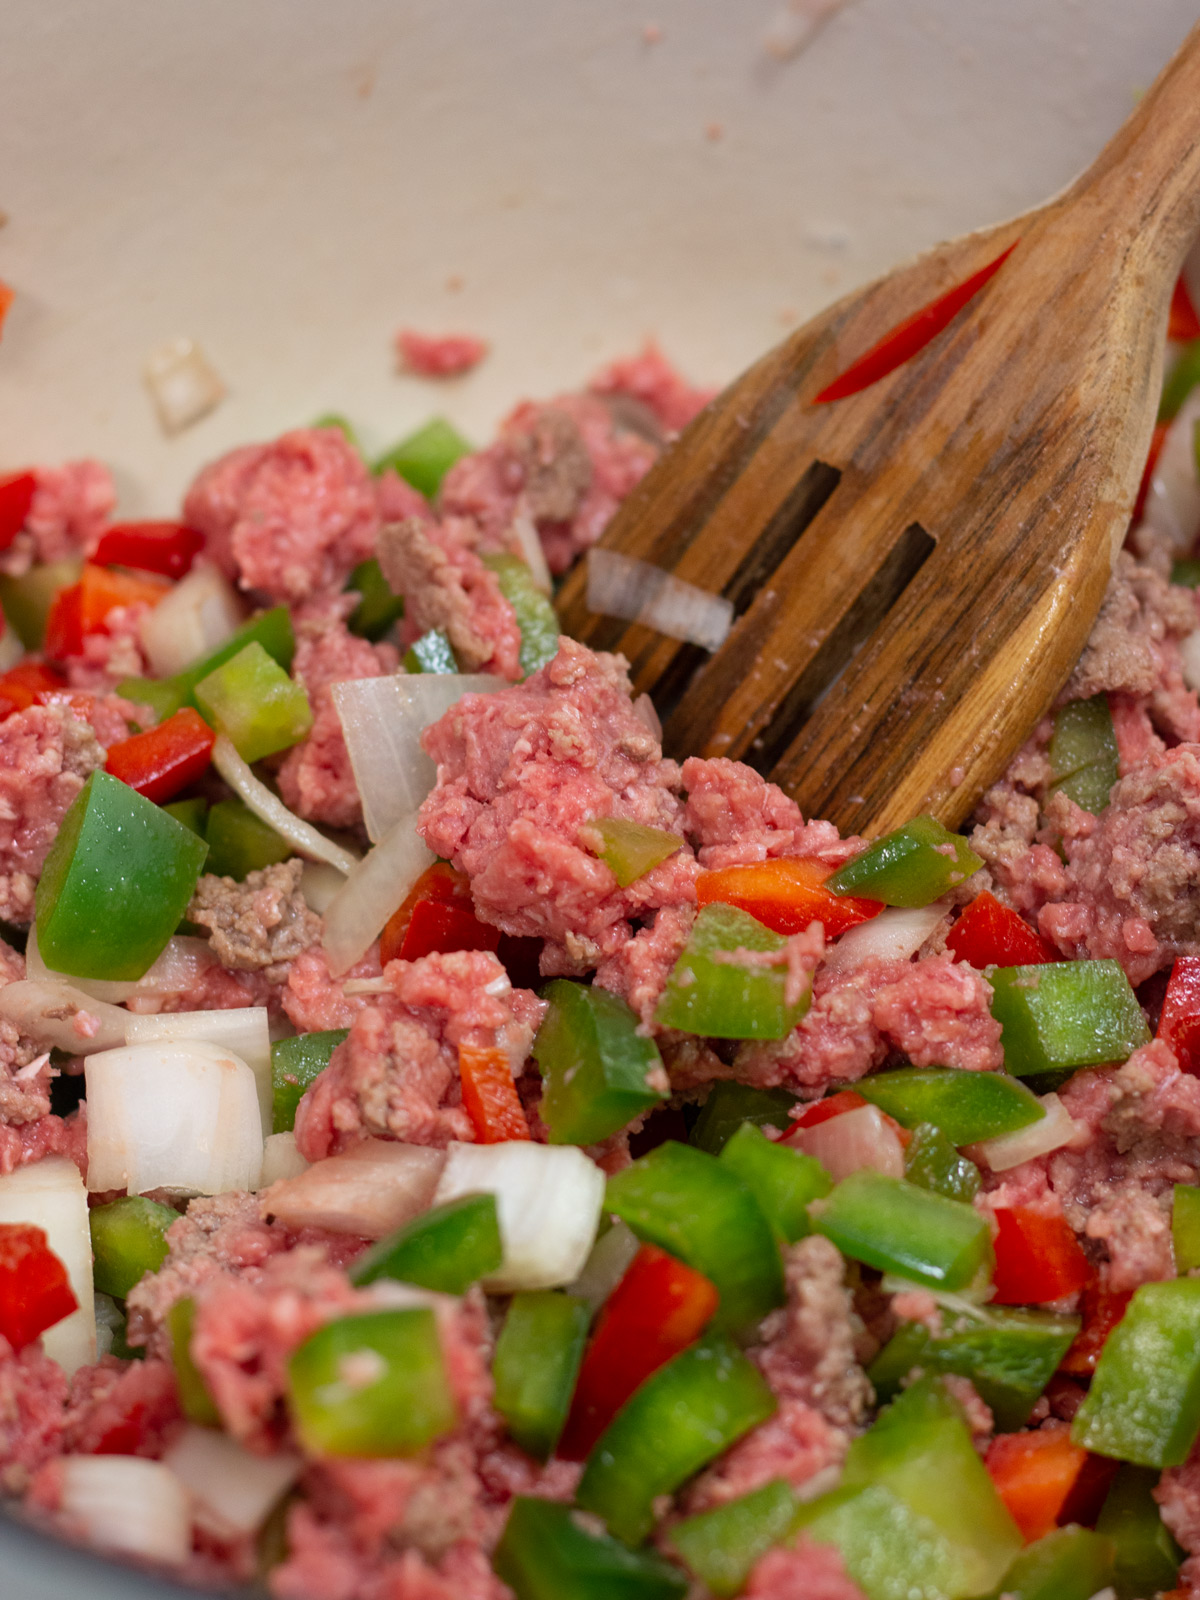 ground beef, peppers and onion cooking